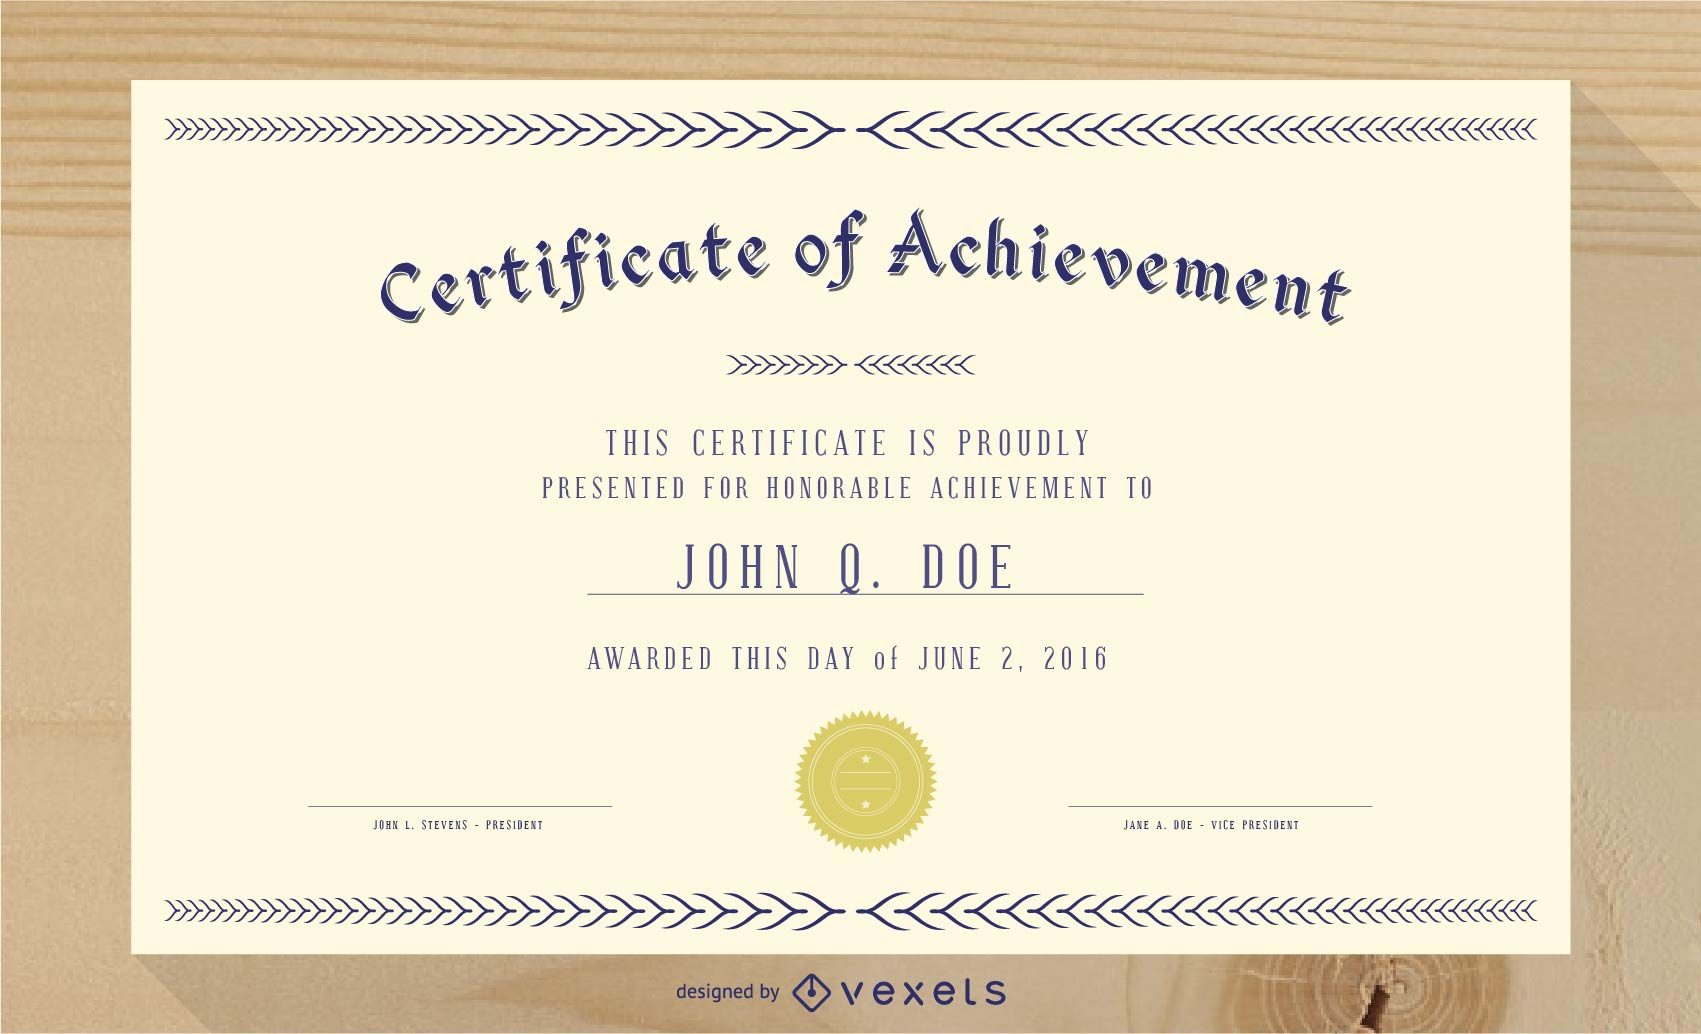 Gorgeous Diploma Certificate Template 03 Vector